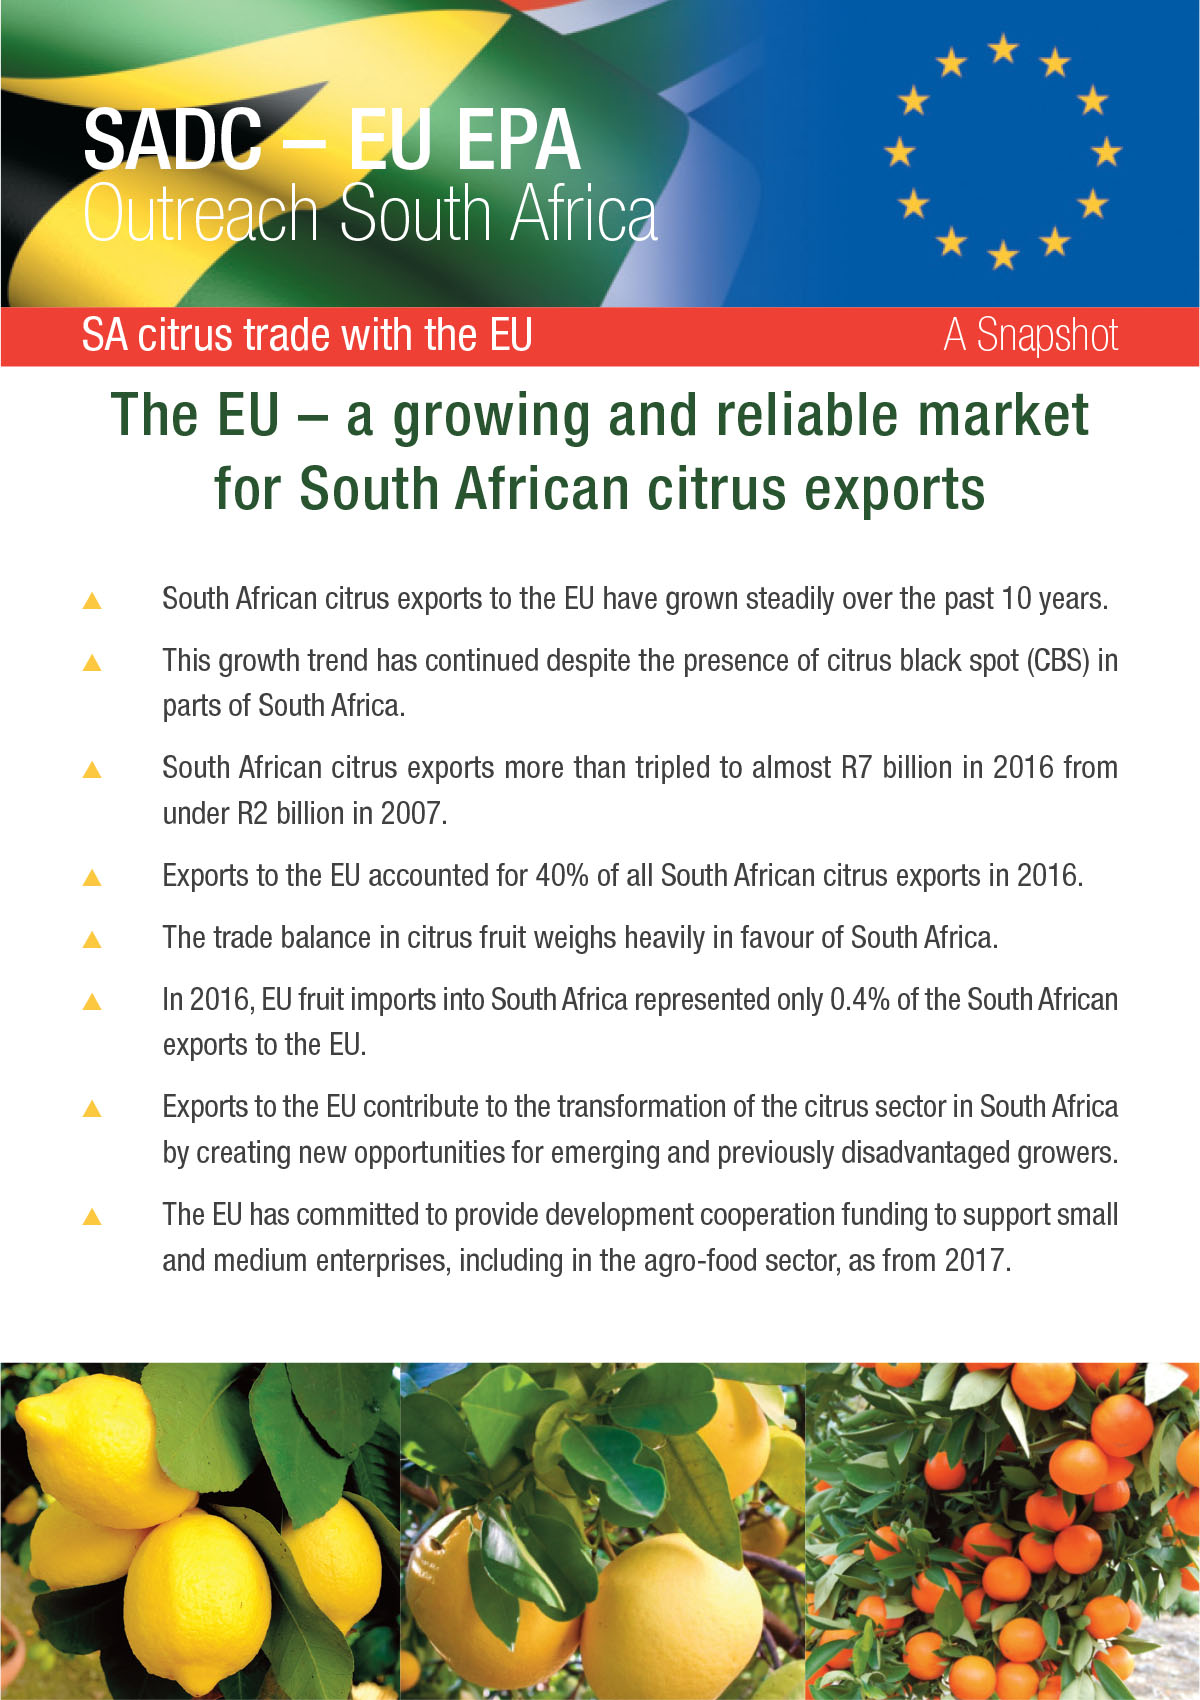 Citrus trade with the EU - A snapshot